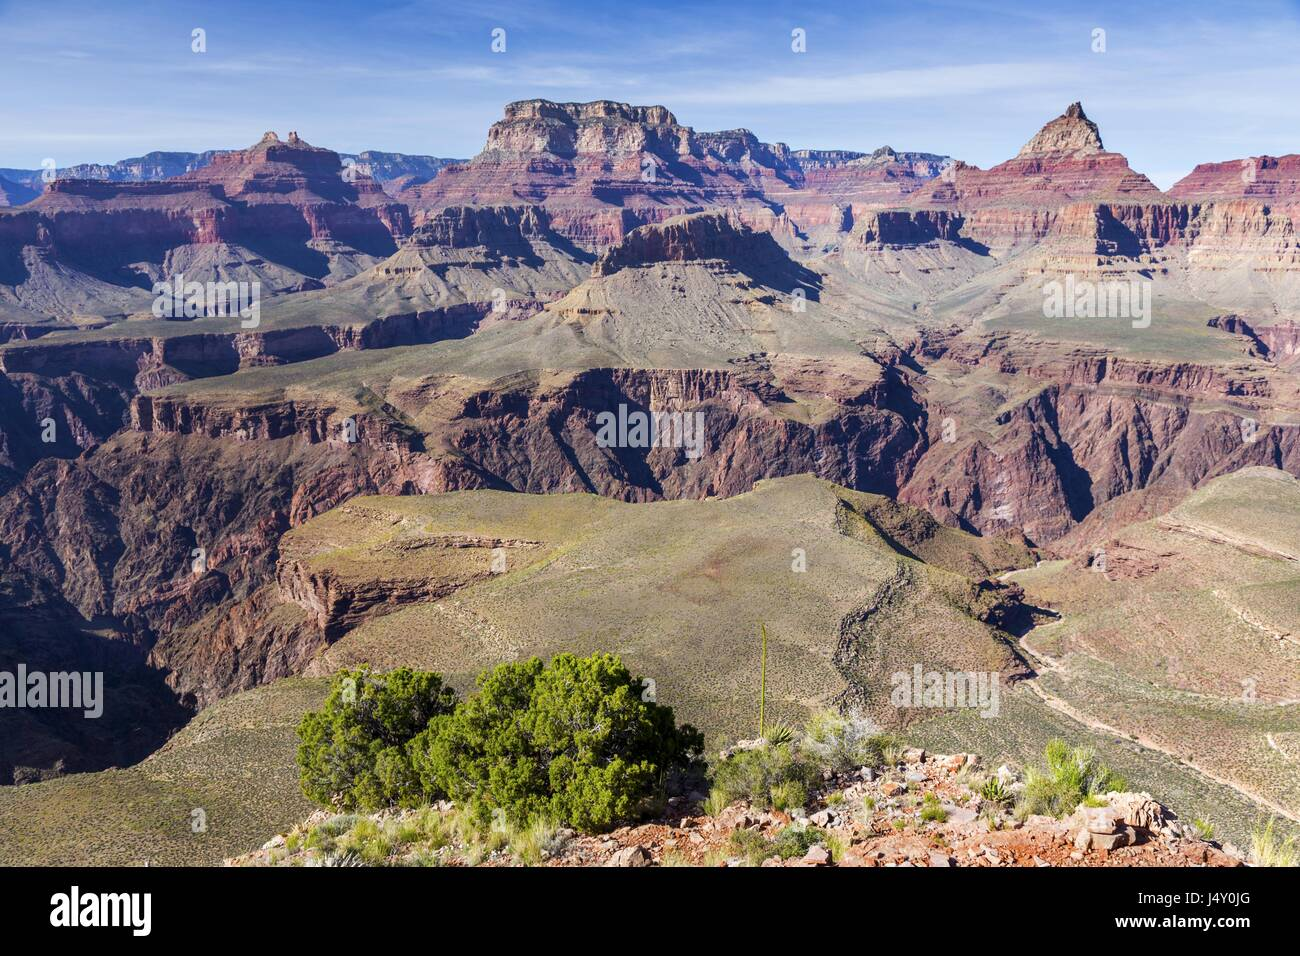 Panoramic View of Vishnu Temple and North Rim of Grand Canyon Arizona from end of Horseshoe Mesa Hiking Trail - Stock Image